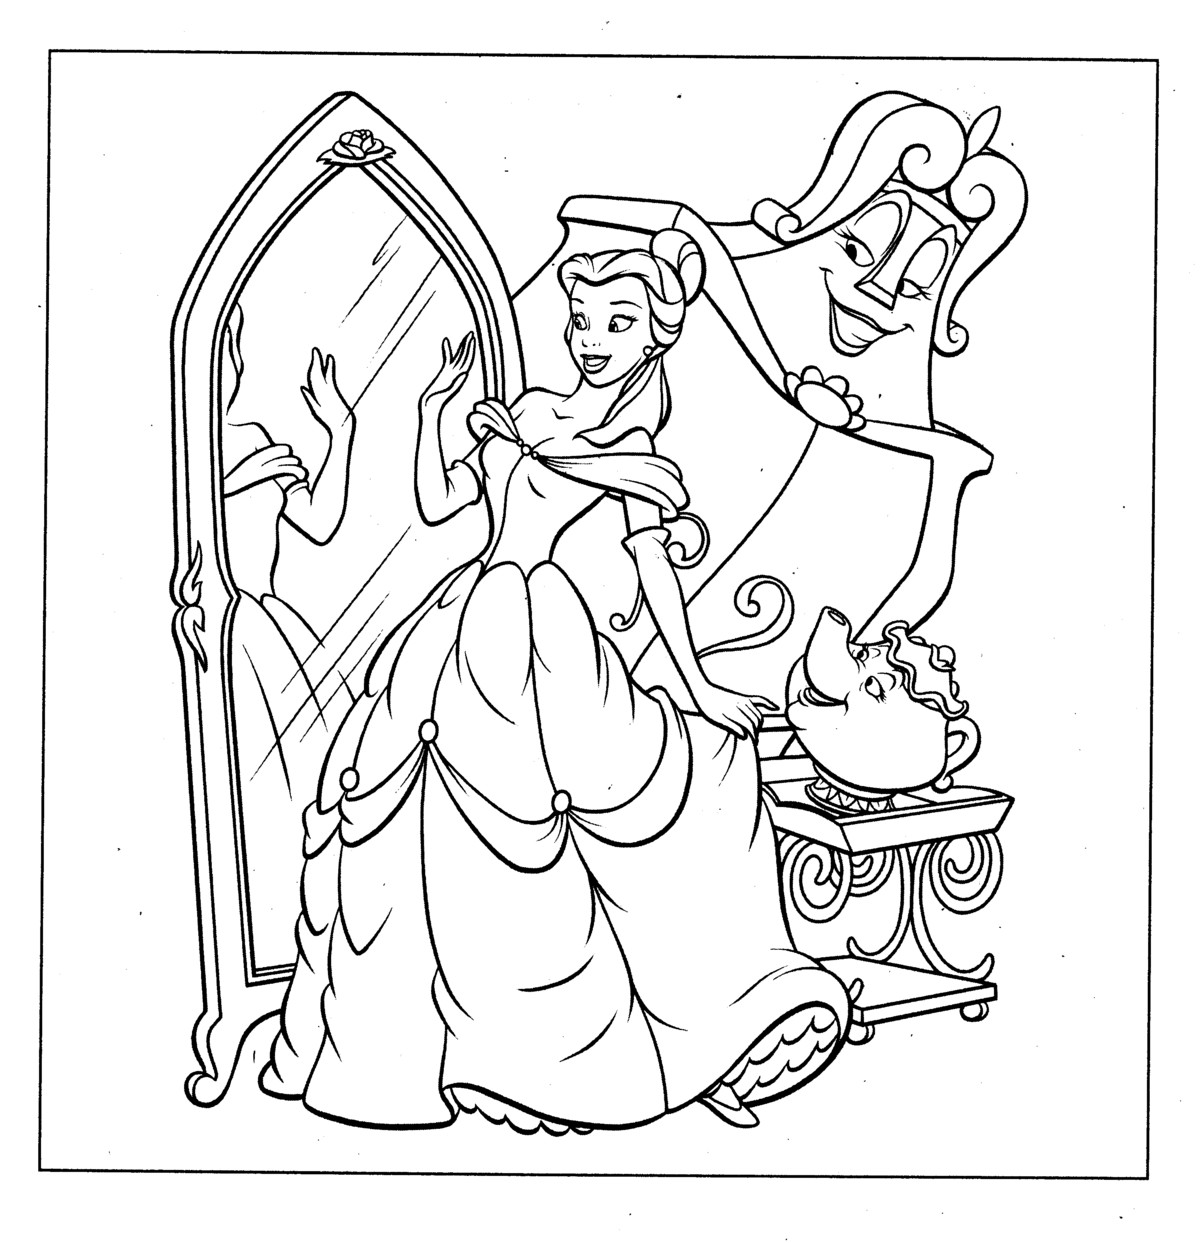 colouring pages for disney princesses disney princess coloring pages team colors princesses for disney pages colouring